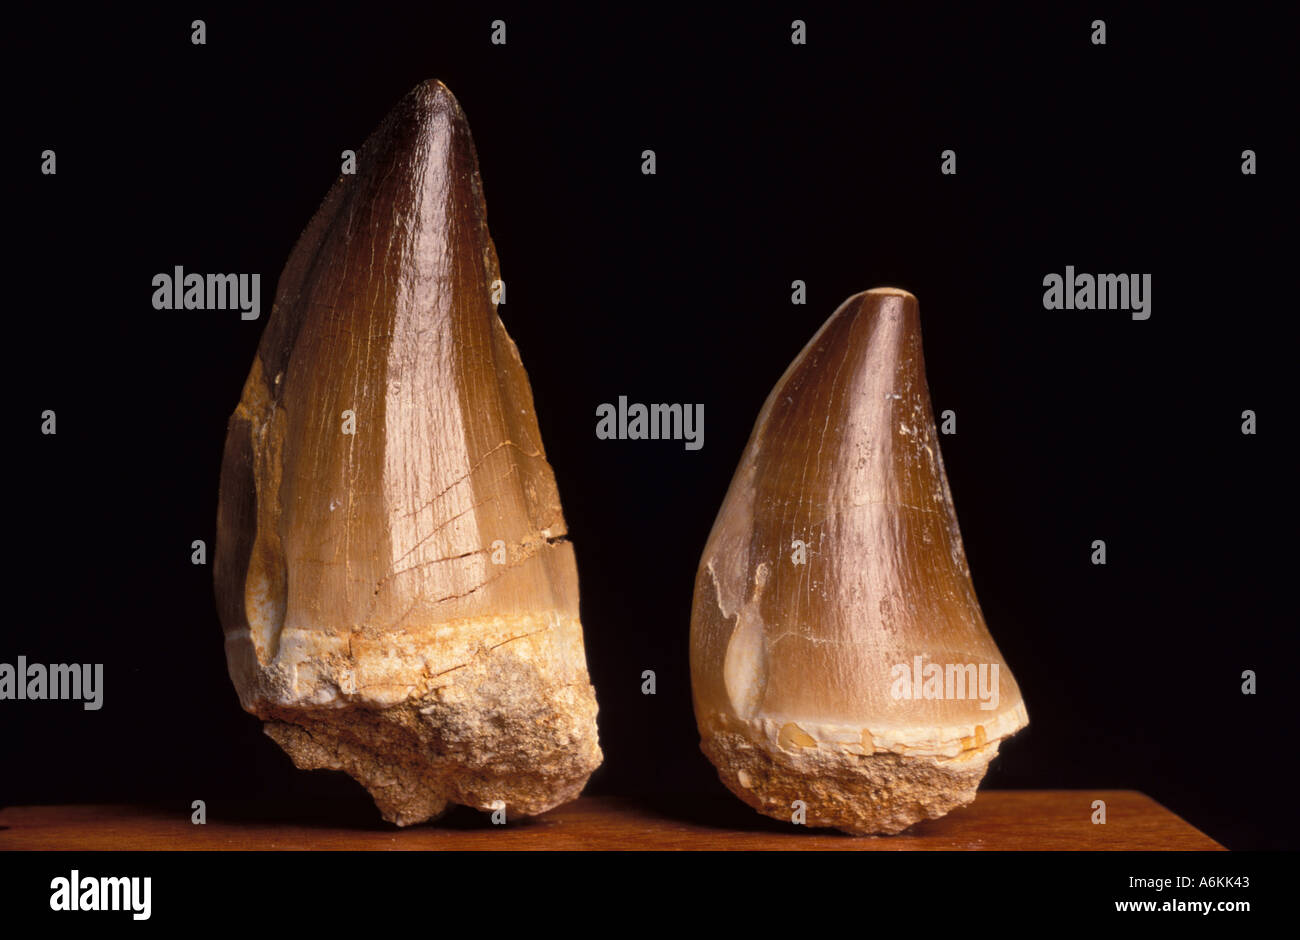 Marine Reptile Tooth Fossil Cretaceous period time 65 Million years ago - Stock Image